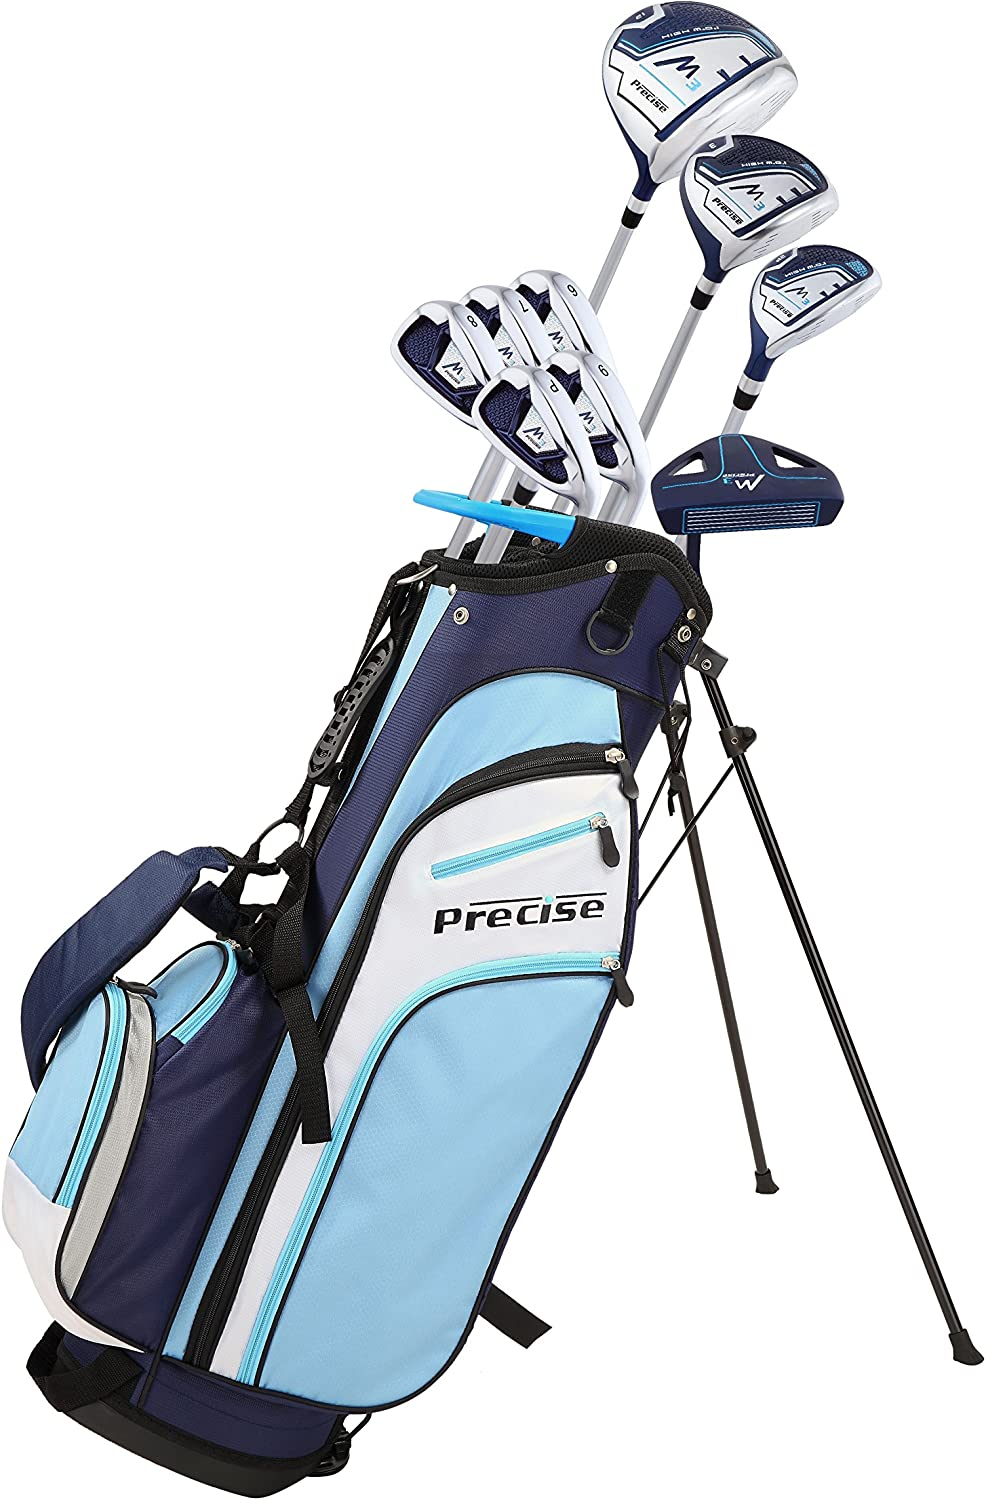 Best Women's Golf Clubs Review Guide For 2021 - Report ...